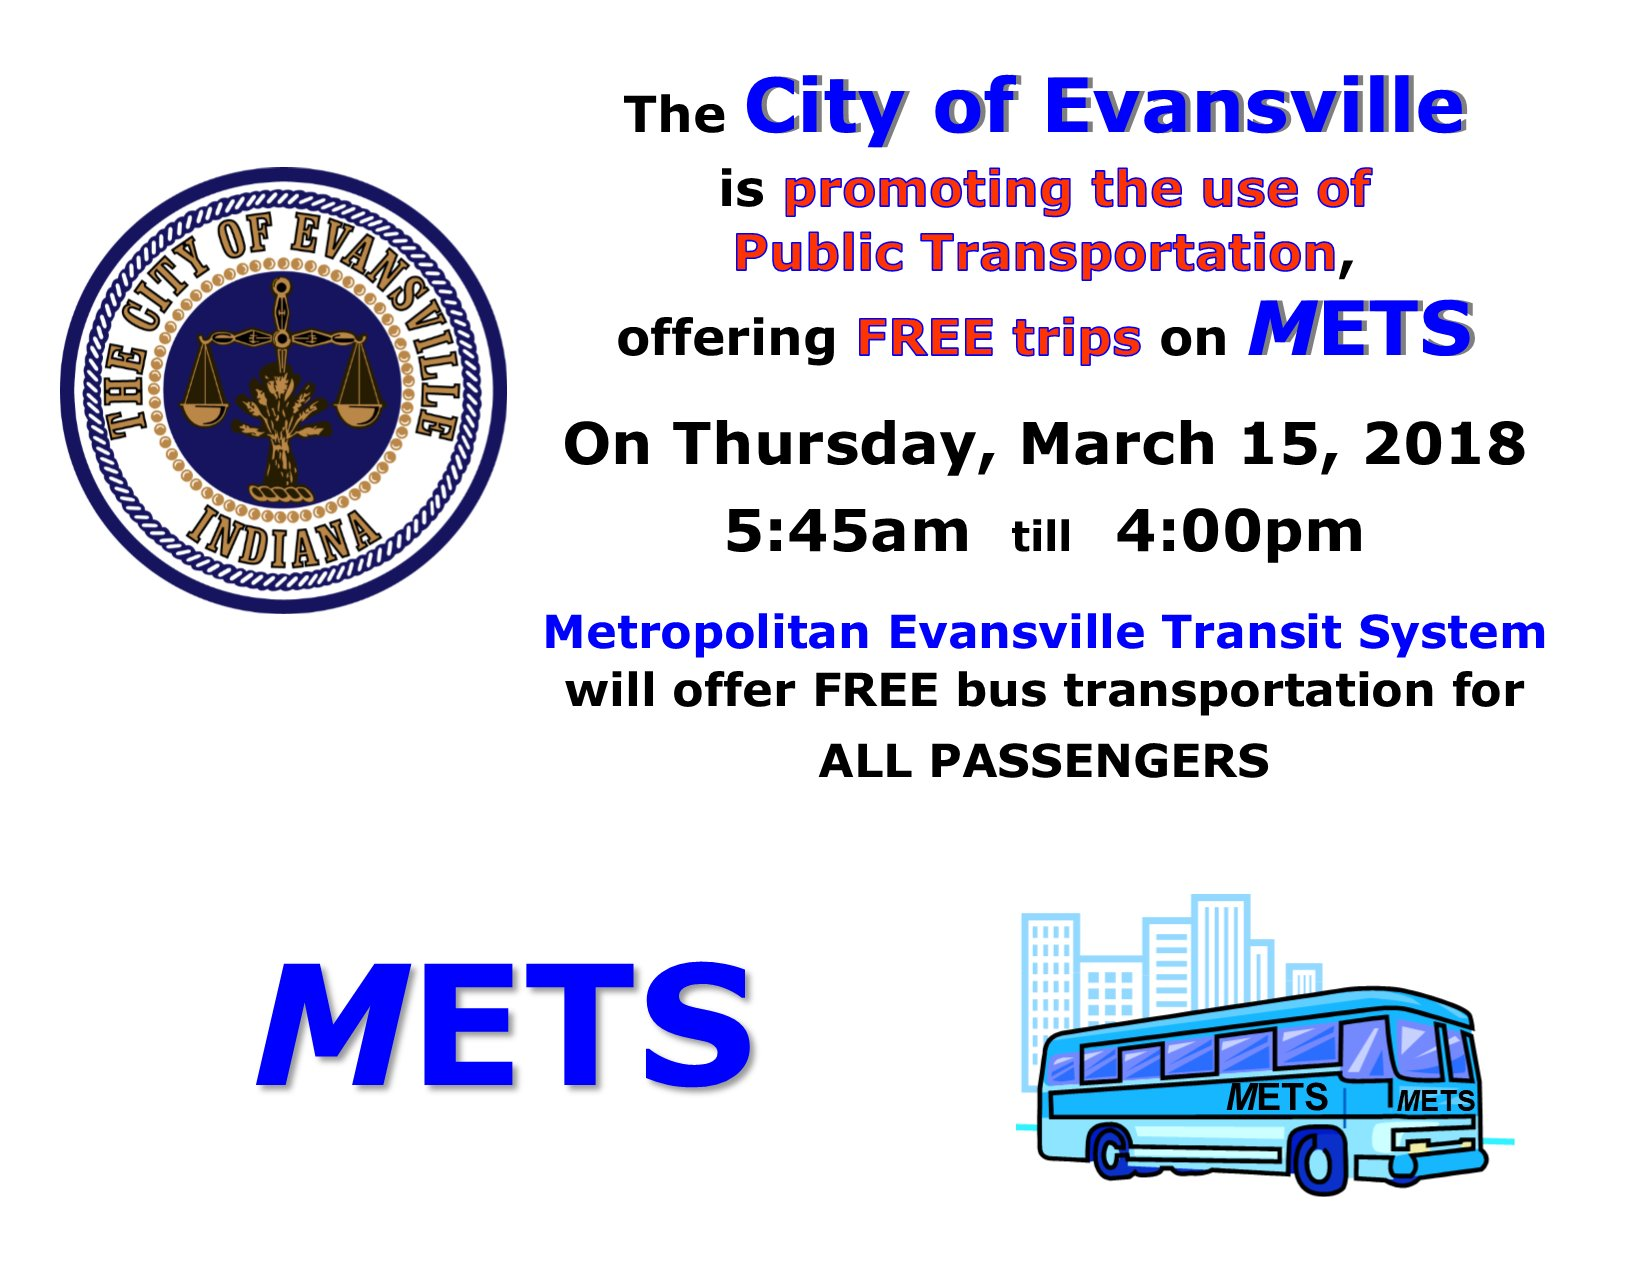 City Of Evansville On Twitter Ride Mets Free This Thursday March 15 From 5 45 A M Until 4 00 P M The Free Ride Offer Includes Mets Mobility Need To Know What Time Your Bus